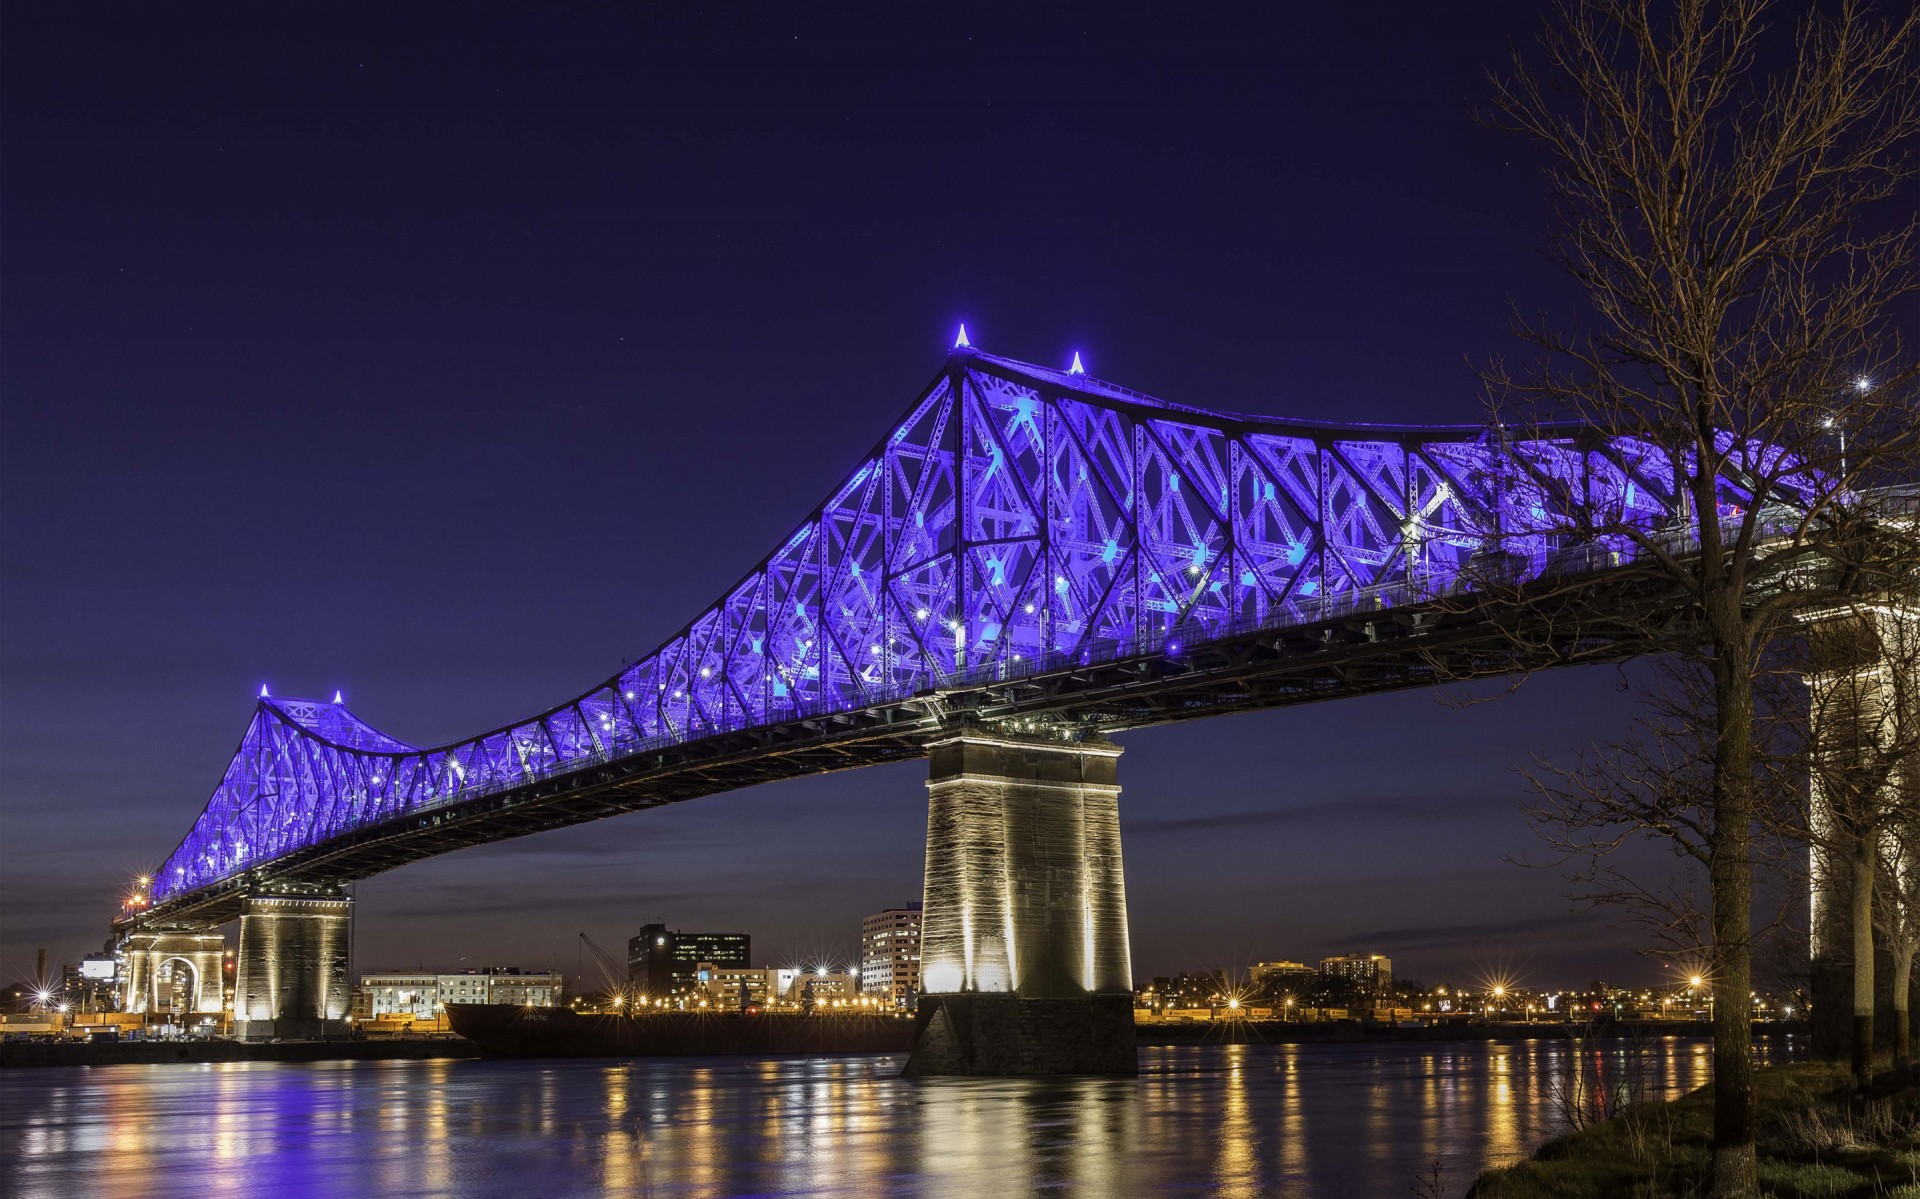 Approximately 480 durable, high-output Lumenbeam LBX luminaires, carefully concealed from view within the structure, set the interior of the edifice aglow with a uniform wash of color. – The Jacques Cartier and Champlain Bridges Incorporated